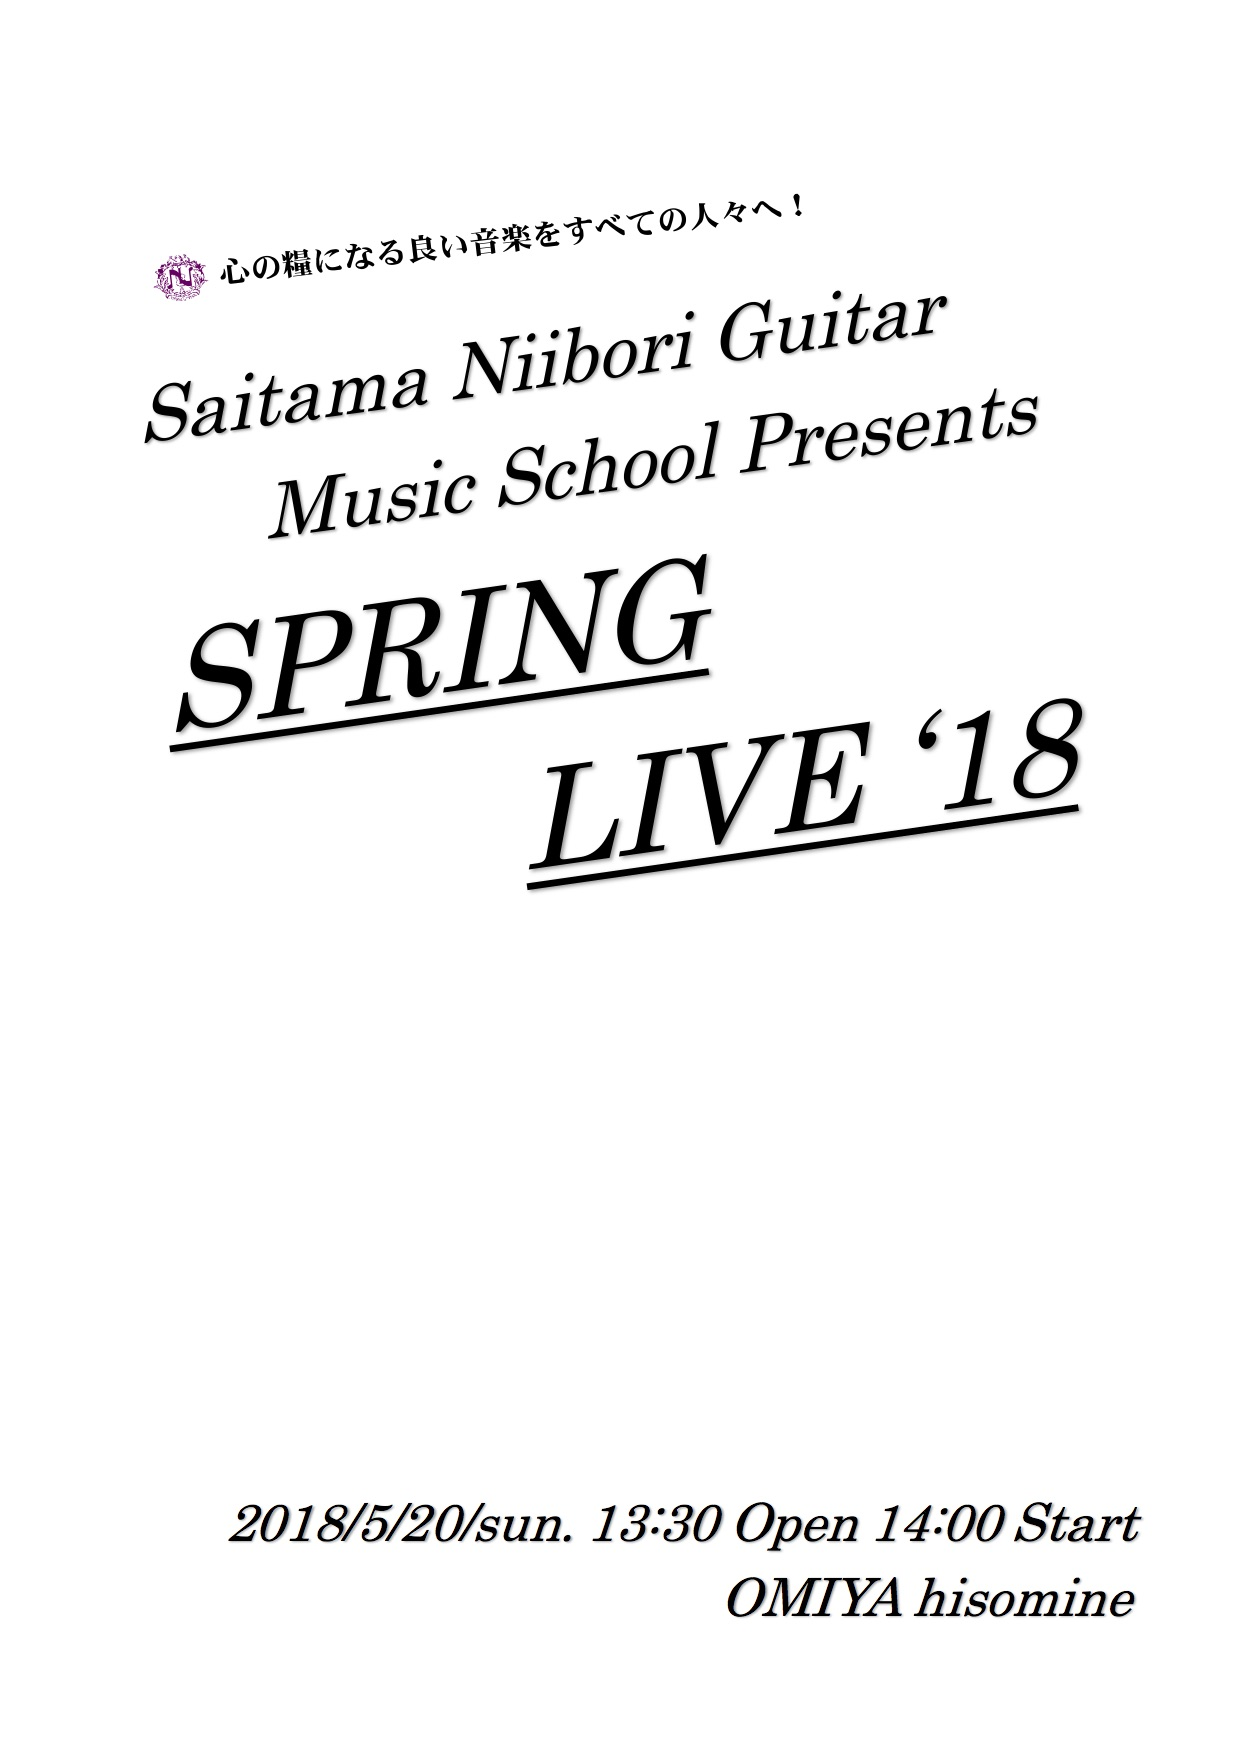 Saitama Niibori Guiter Music School Presents SPRING LIVE'18